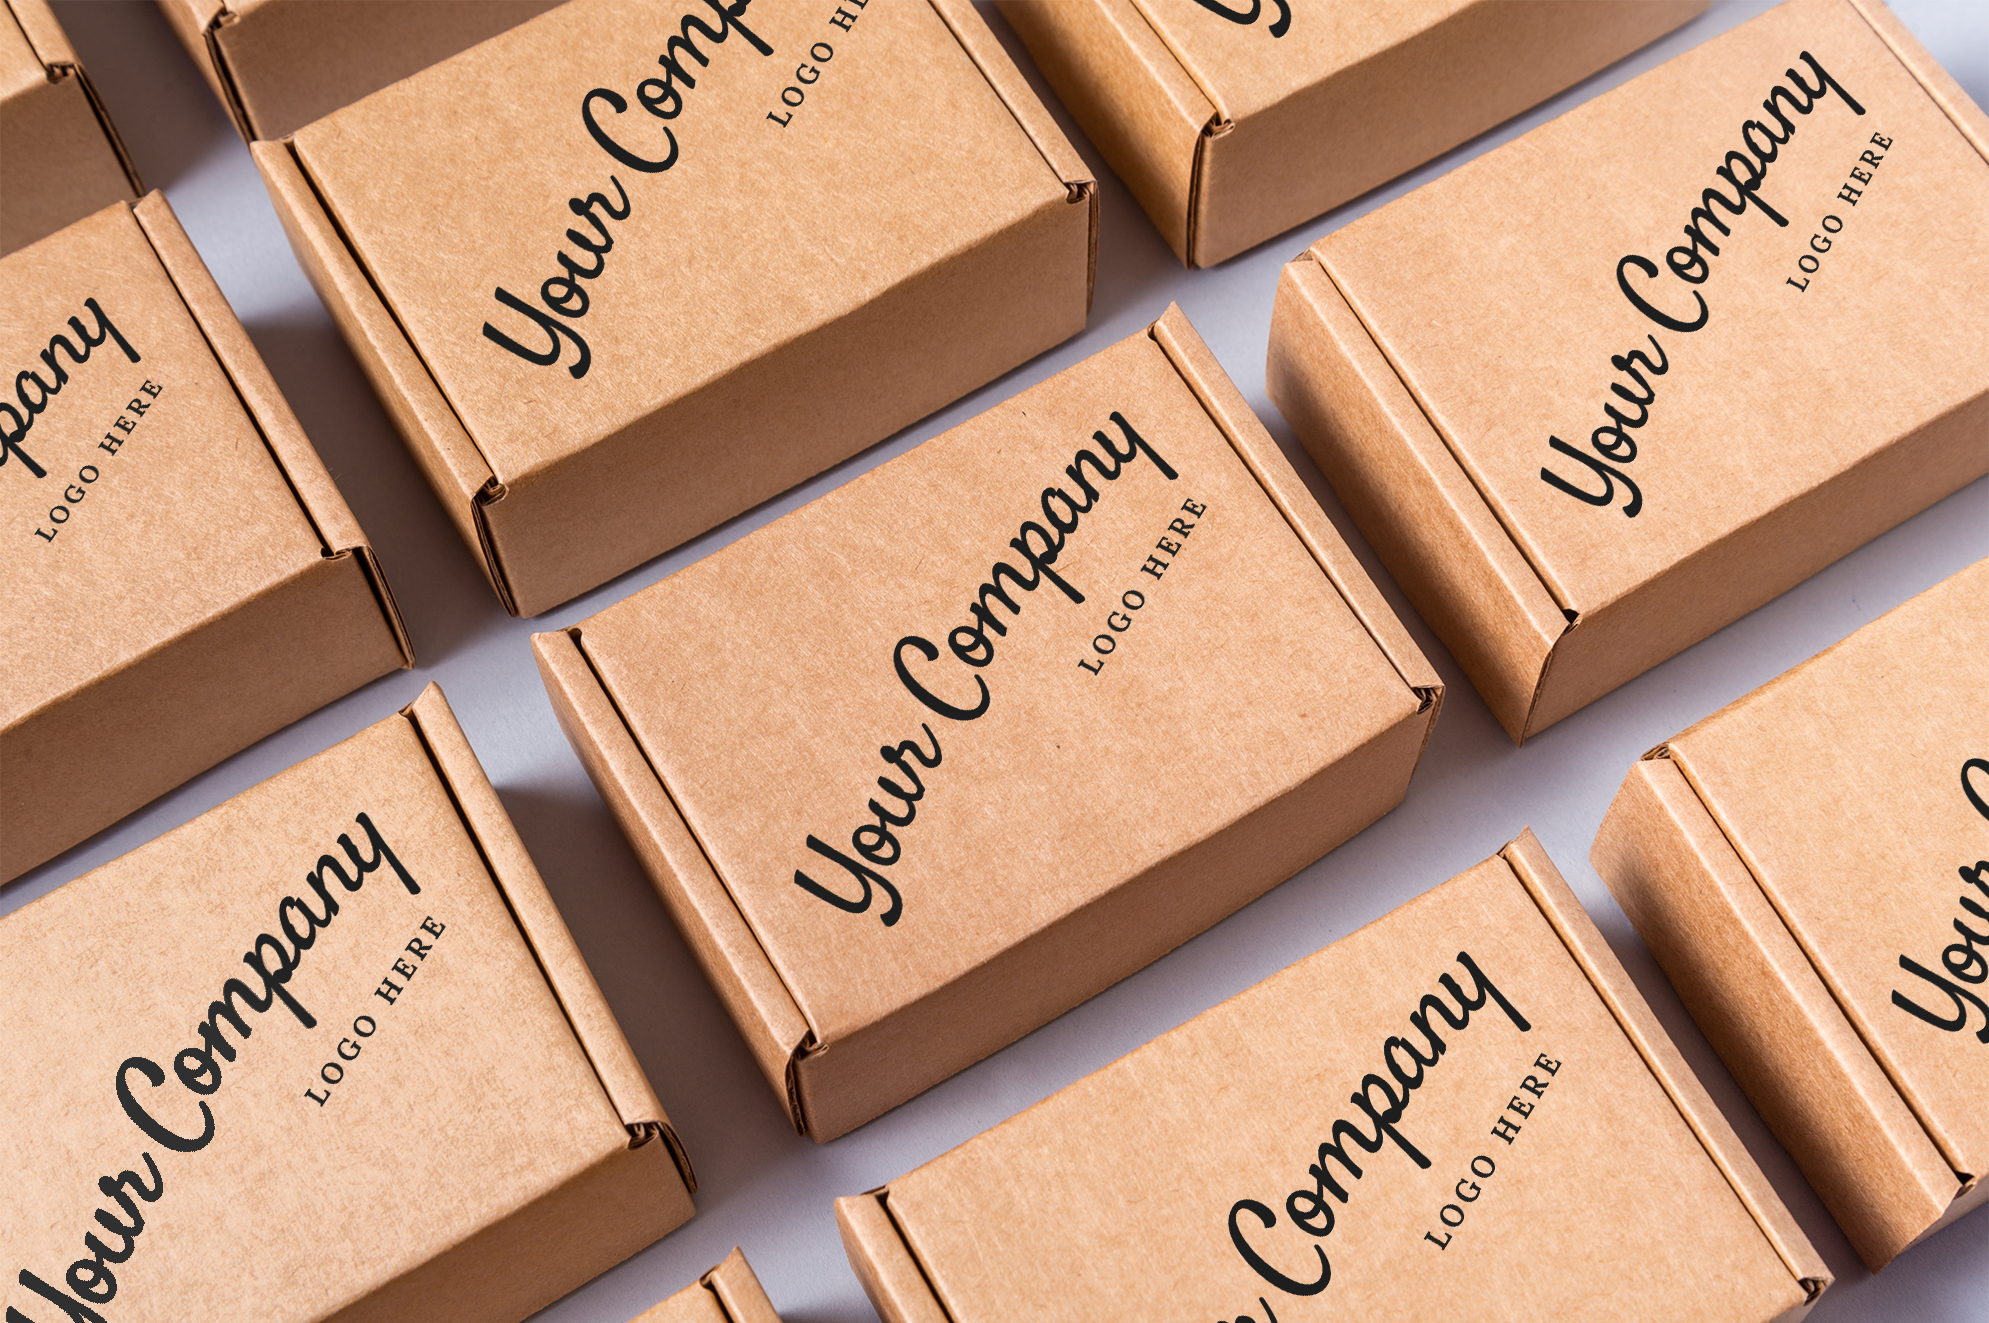 Talk to The Bag 'N' Box man about custom printed packaging requirements.